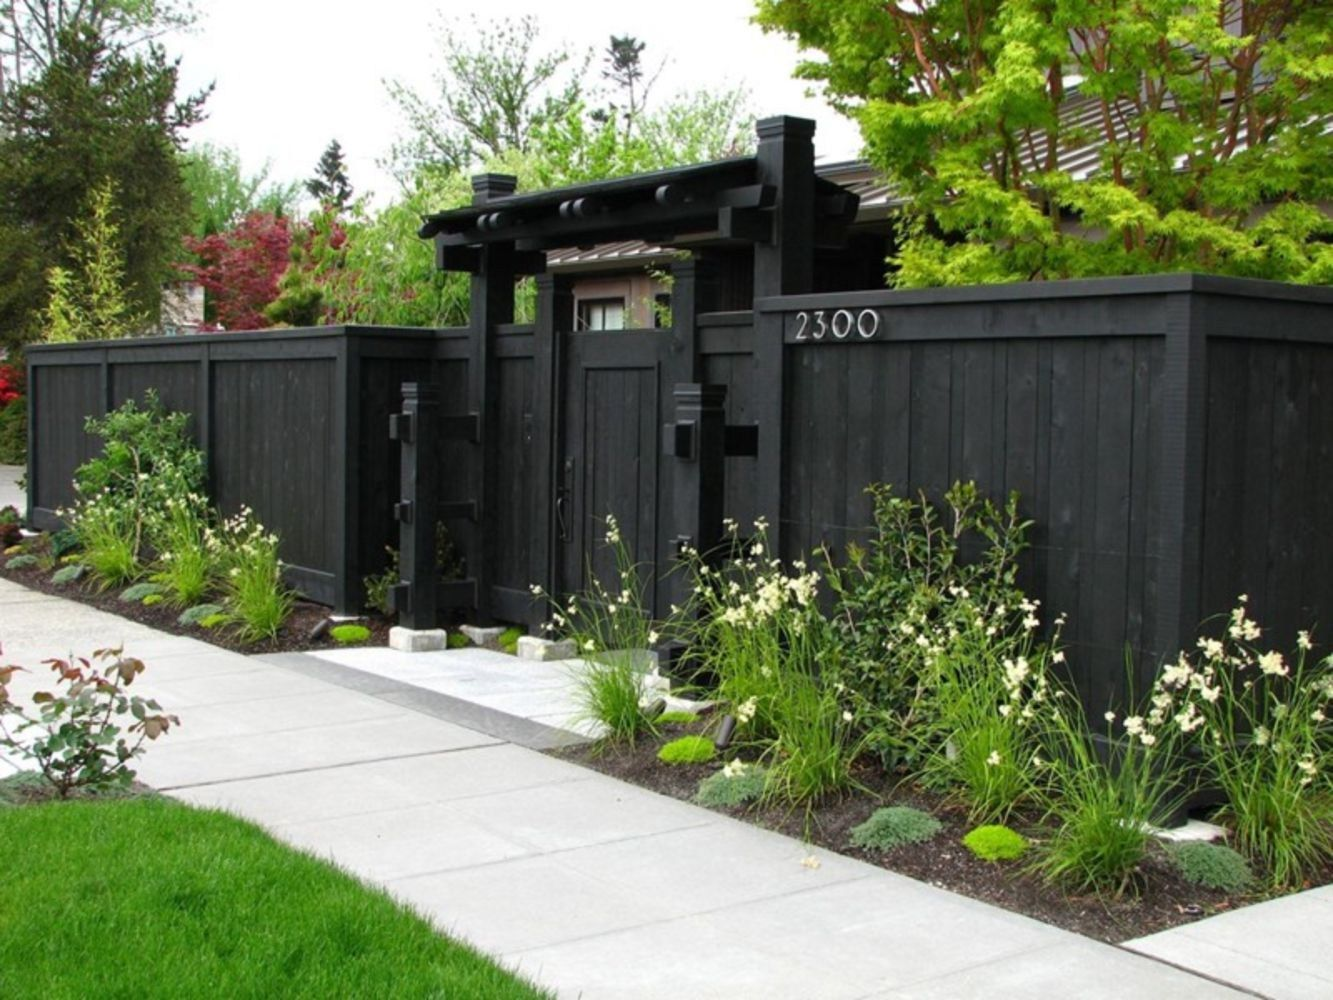 cheap diy privacy fence ideas 22 privacy fence on inexpensive way to build a wood privacy fence diy guide for 2020 id=14537